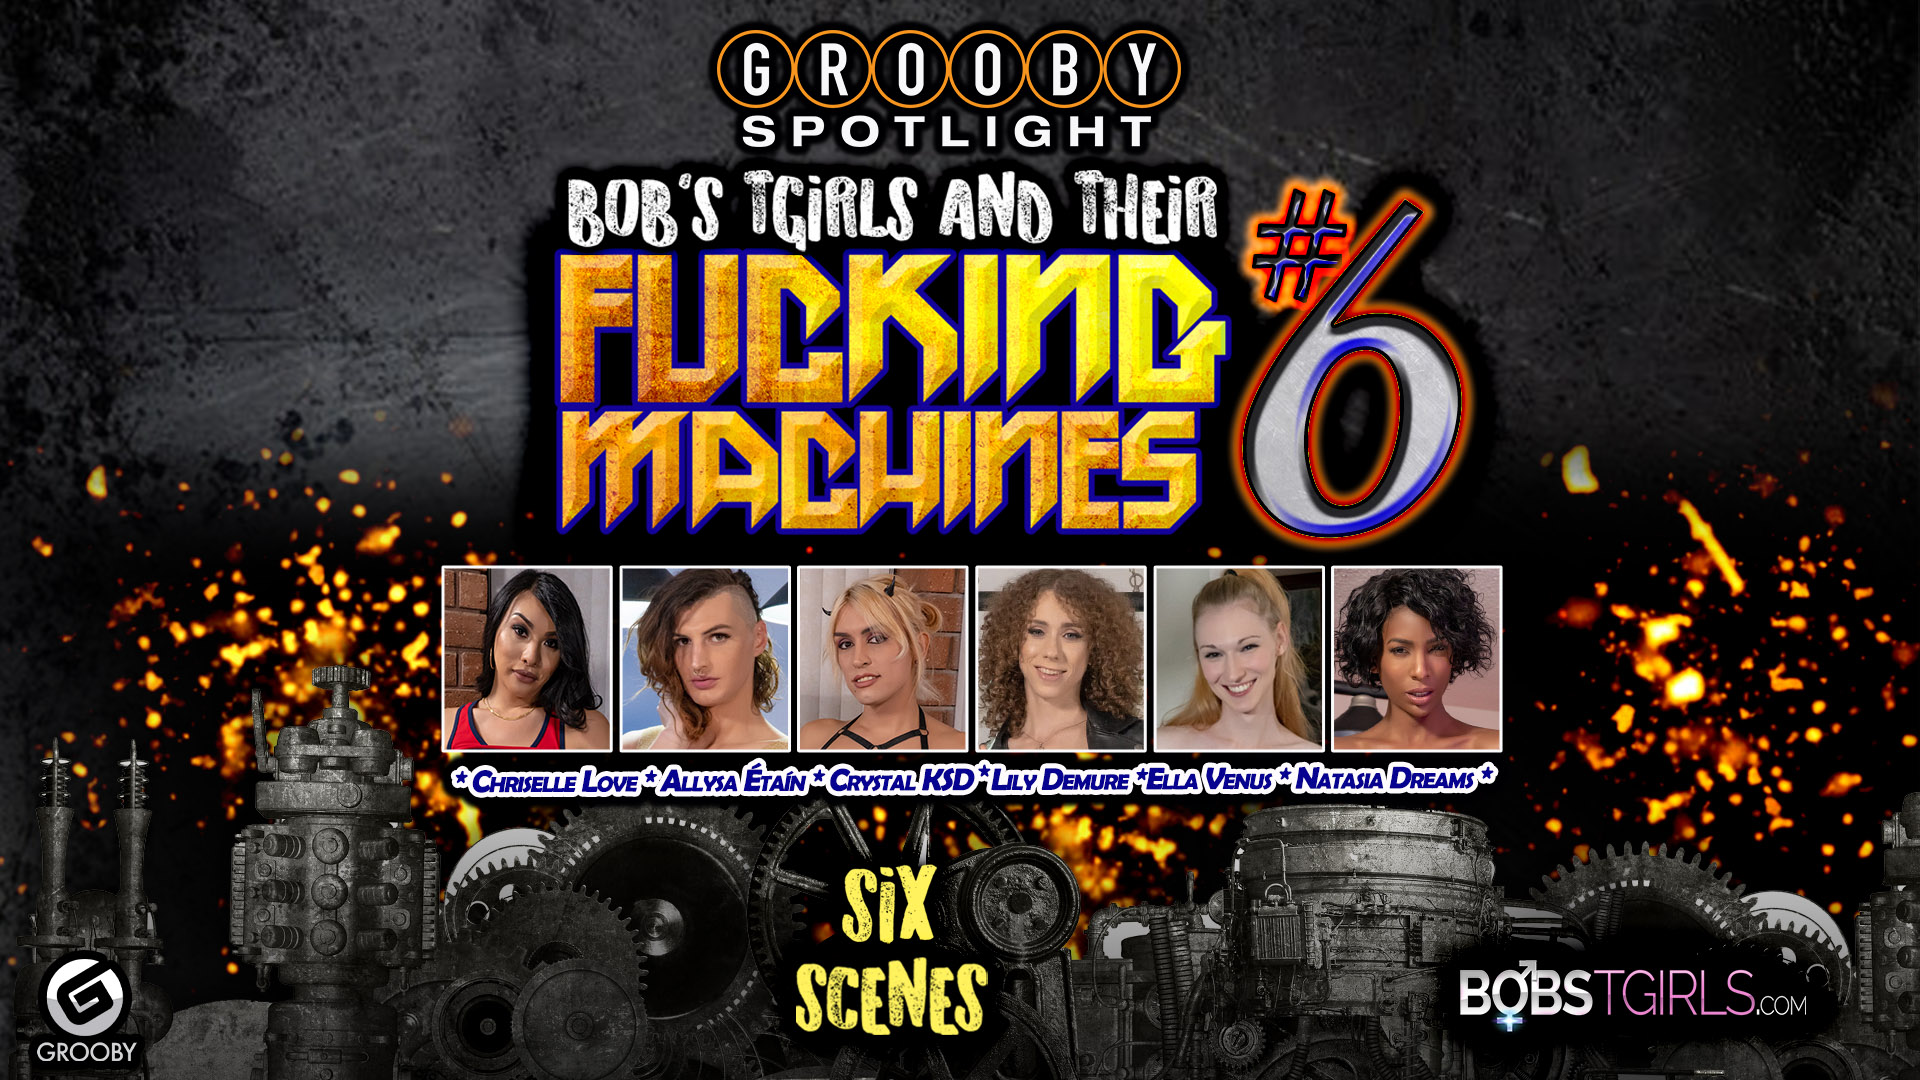 Bob's Tgirls and Their Fucking Machines #6 - DVD Trailer